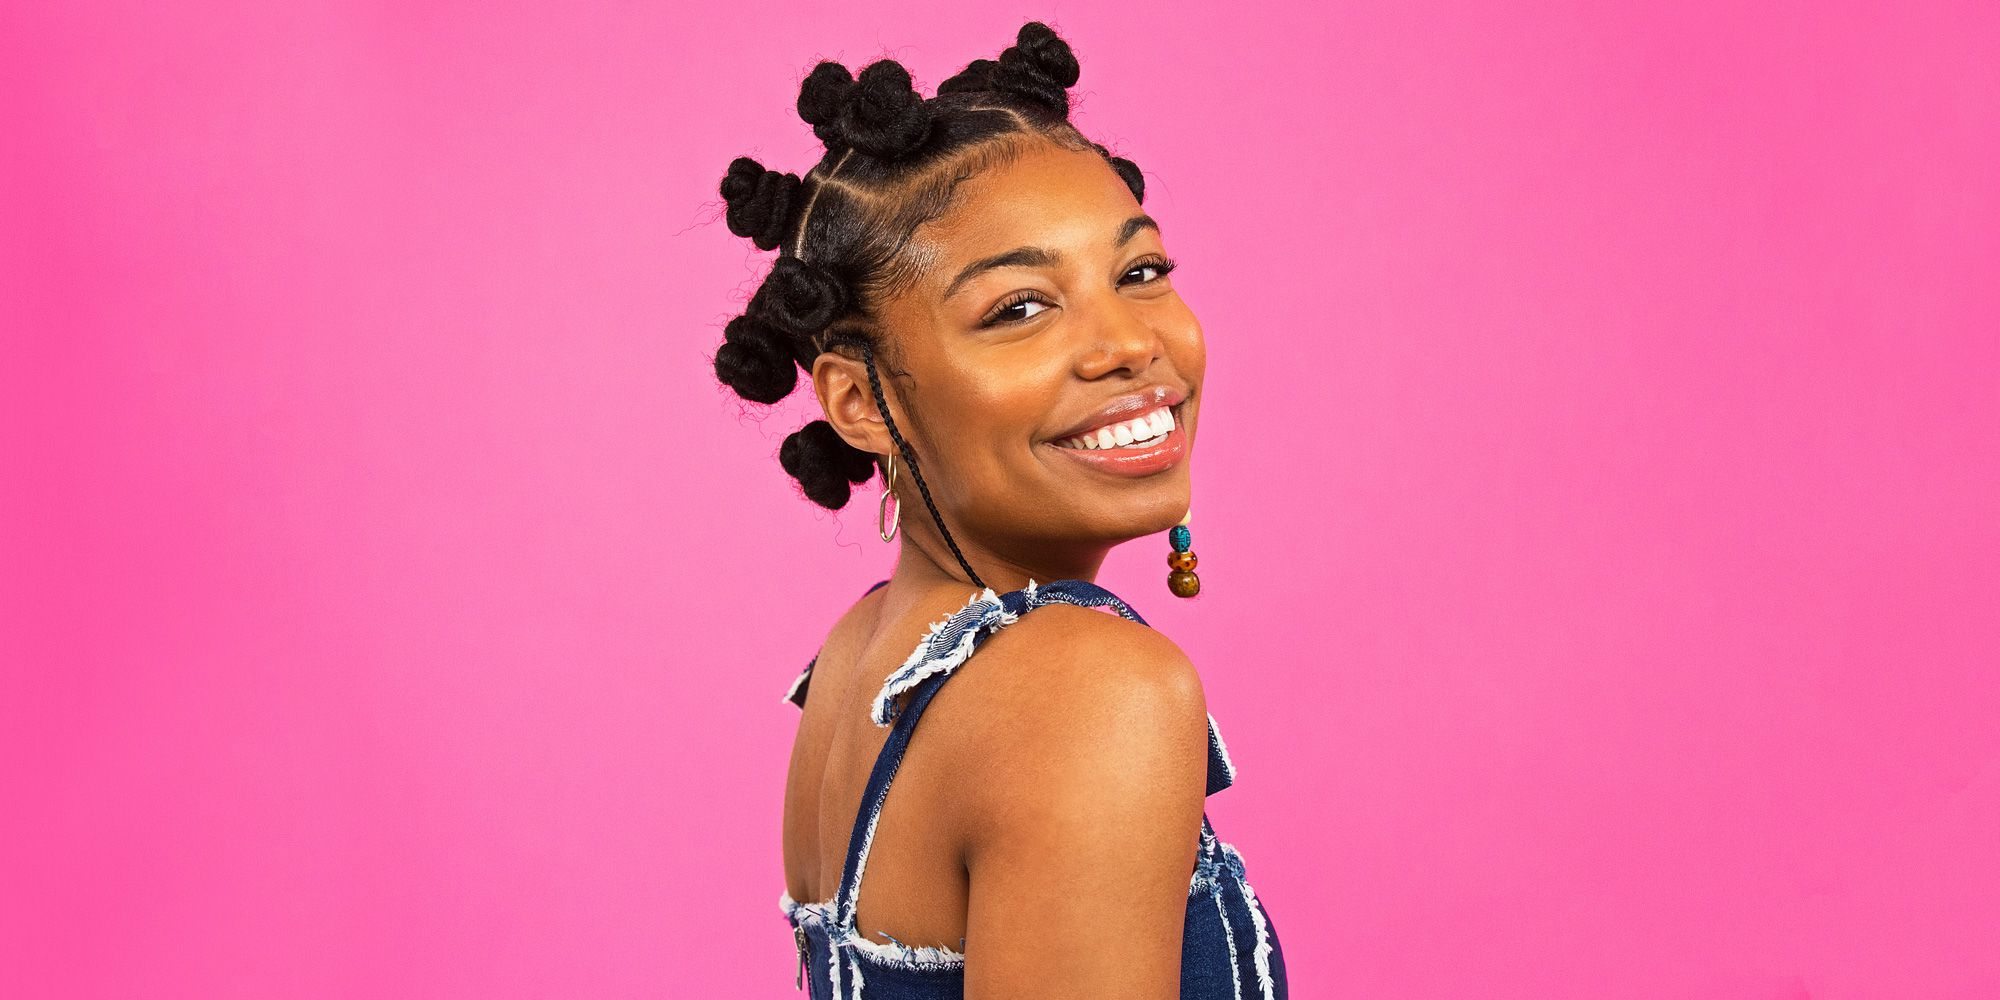 4 Natural Hair Braid Styles – Bantu Knots, Box Braids, And Within 2019 Hoop Embellished Braids Hairstyles (View 13 of 20)